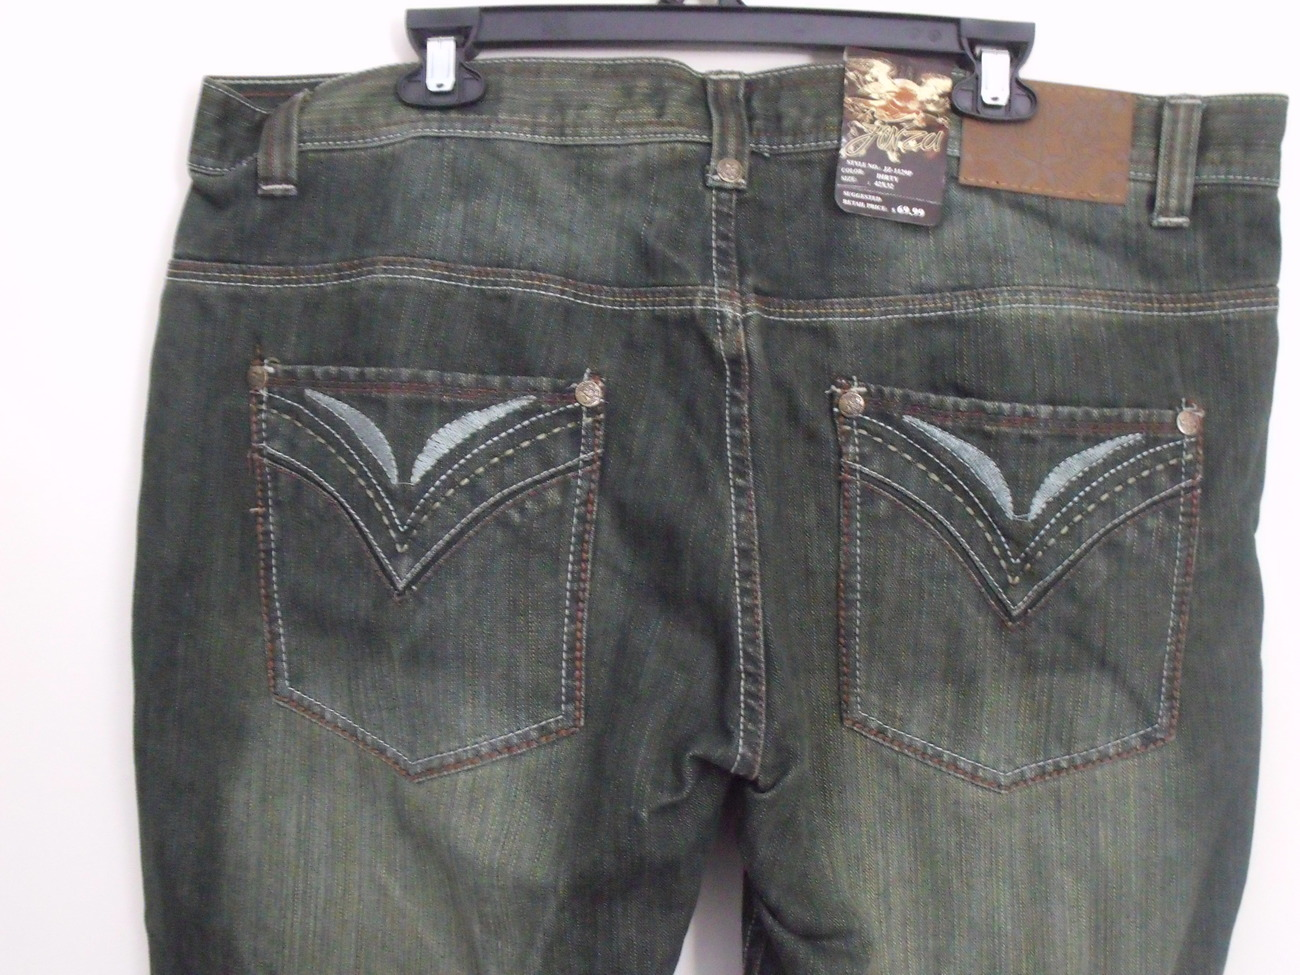 Men's Jeans 42 x 32 Levi's Loose Straight Fit Dark Wash % Cotton. Email to friends Share on Facebook - opens in a new window or tab Share on Twitter - opens in a new window or tab Share on Pinterest - opens in a new window or tab | Add to watch list. Seller information. alth .